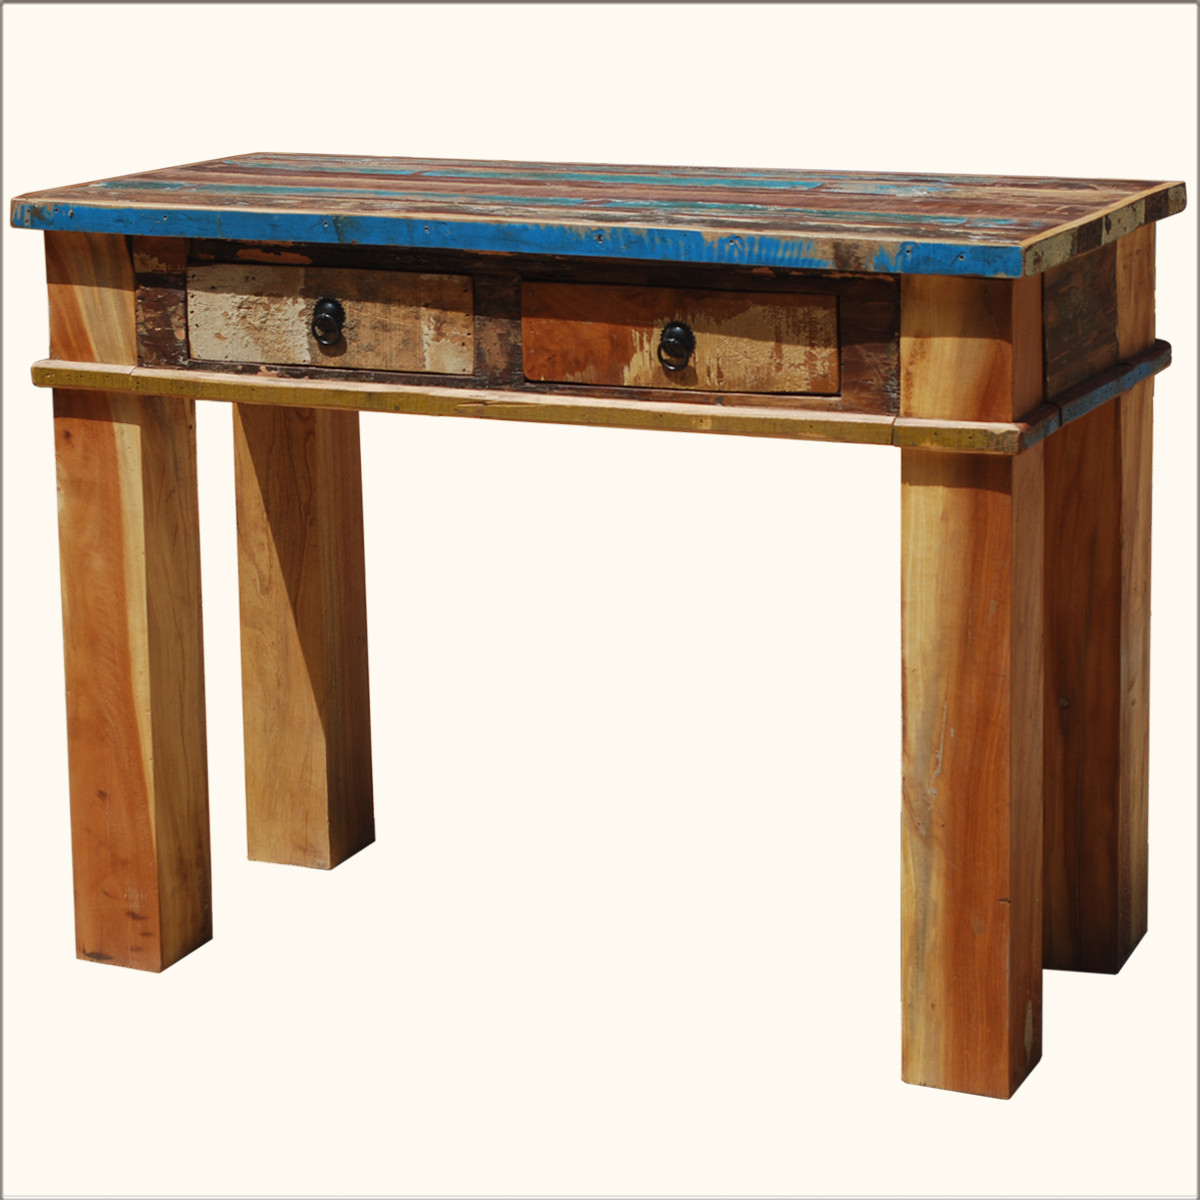 Best ideas about Distressed Entryway Table . Save or Pin Rustic Distressed Reclaimed Wood Console Hall Sofa Now.